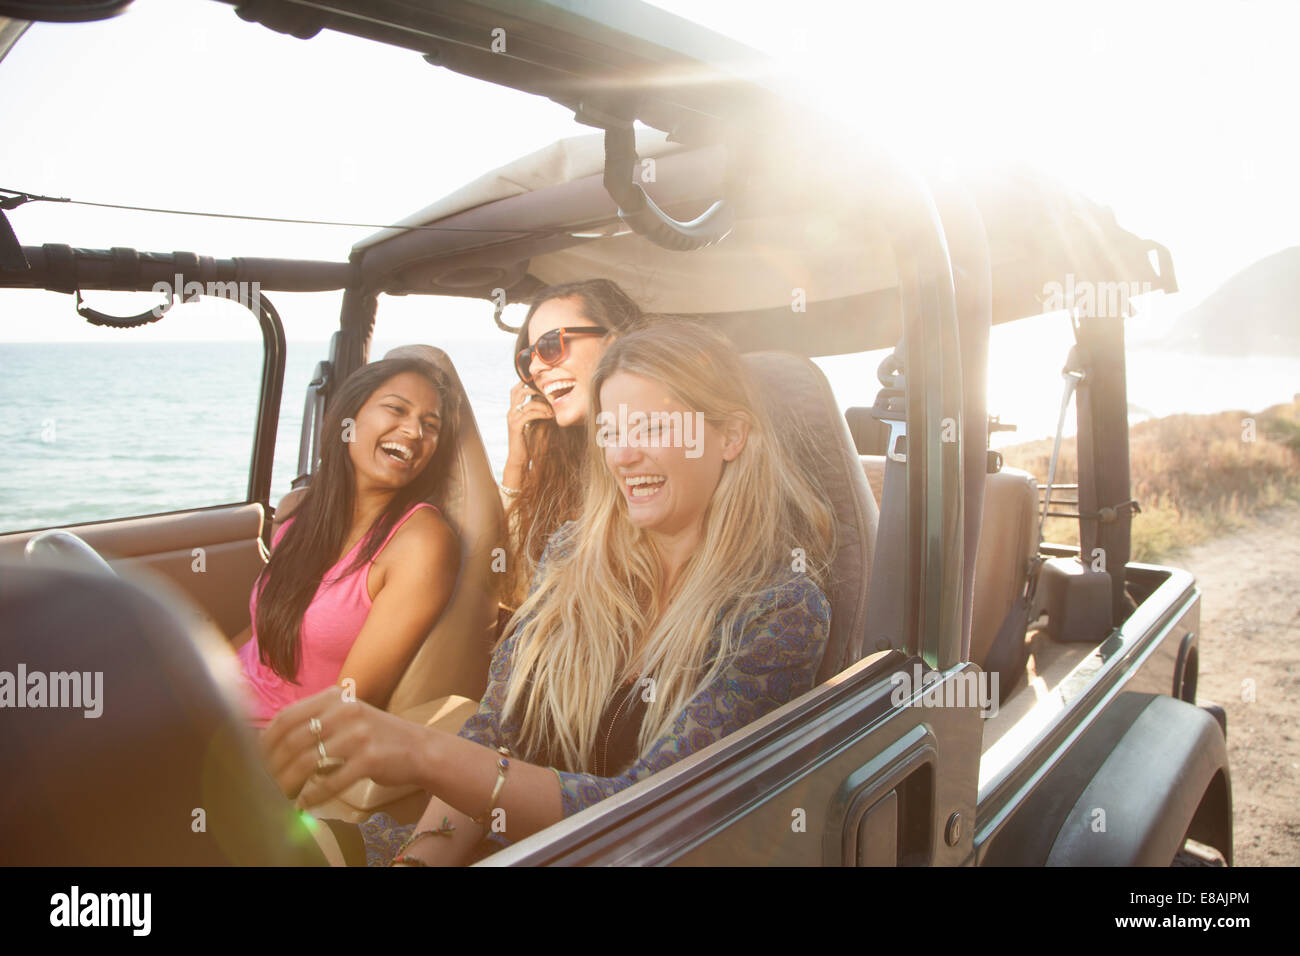 Three young women driving in jeep at coast, Malibu, California, USA - Stock Image